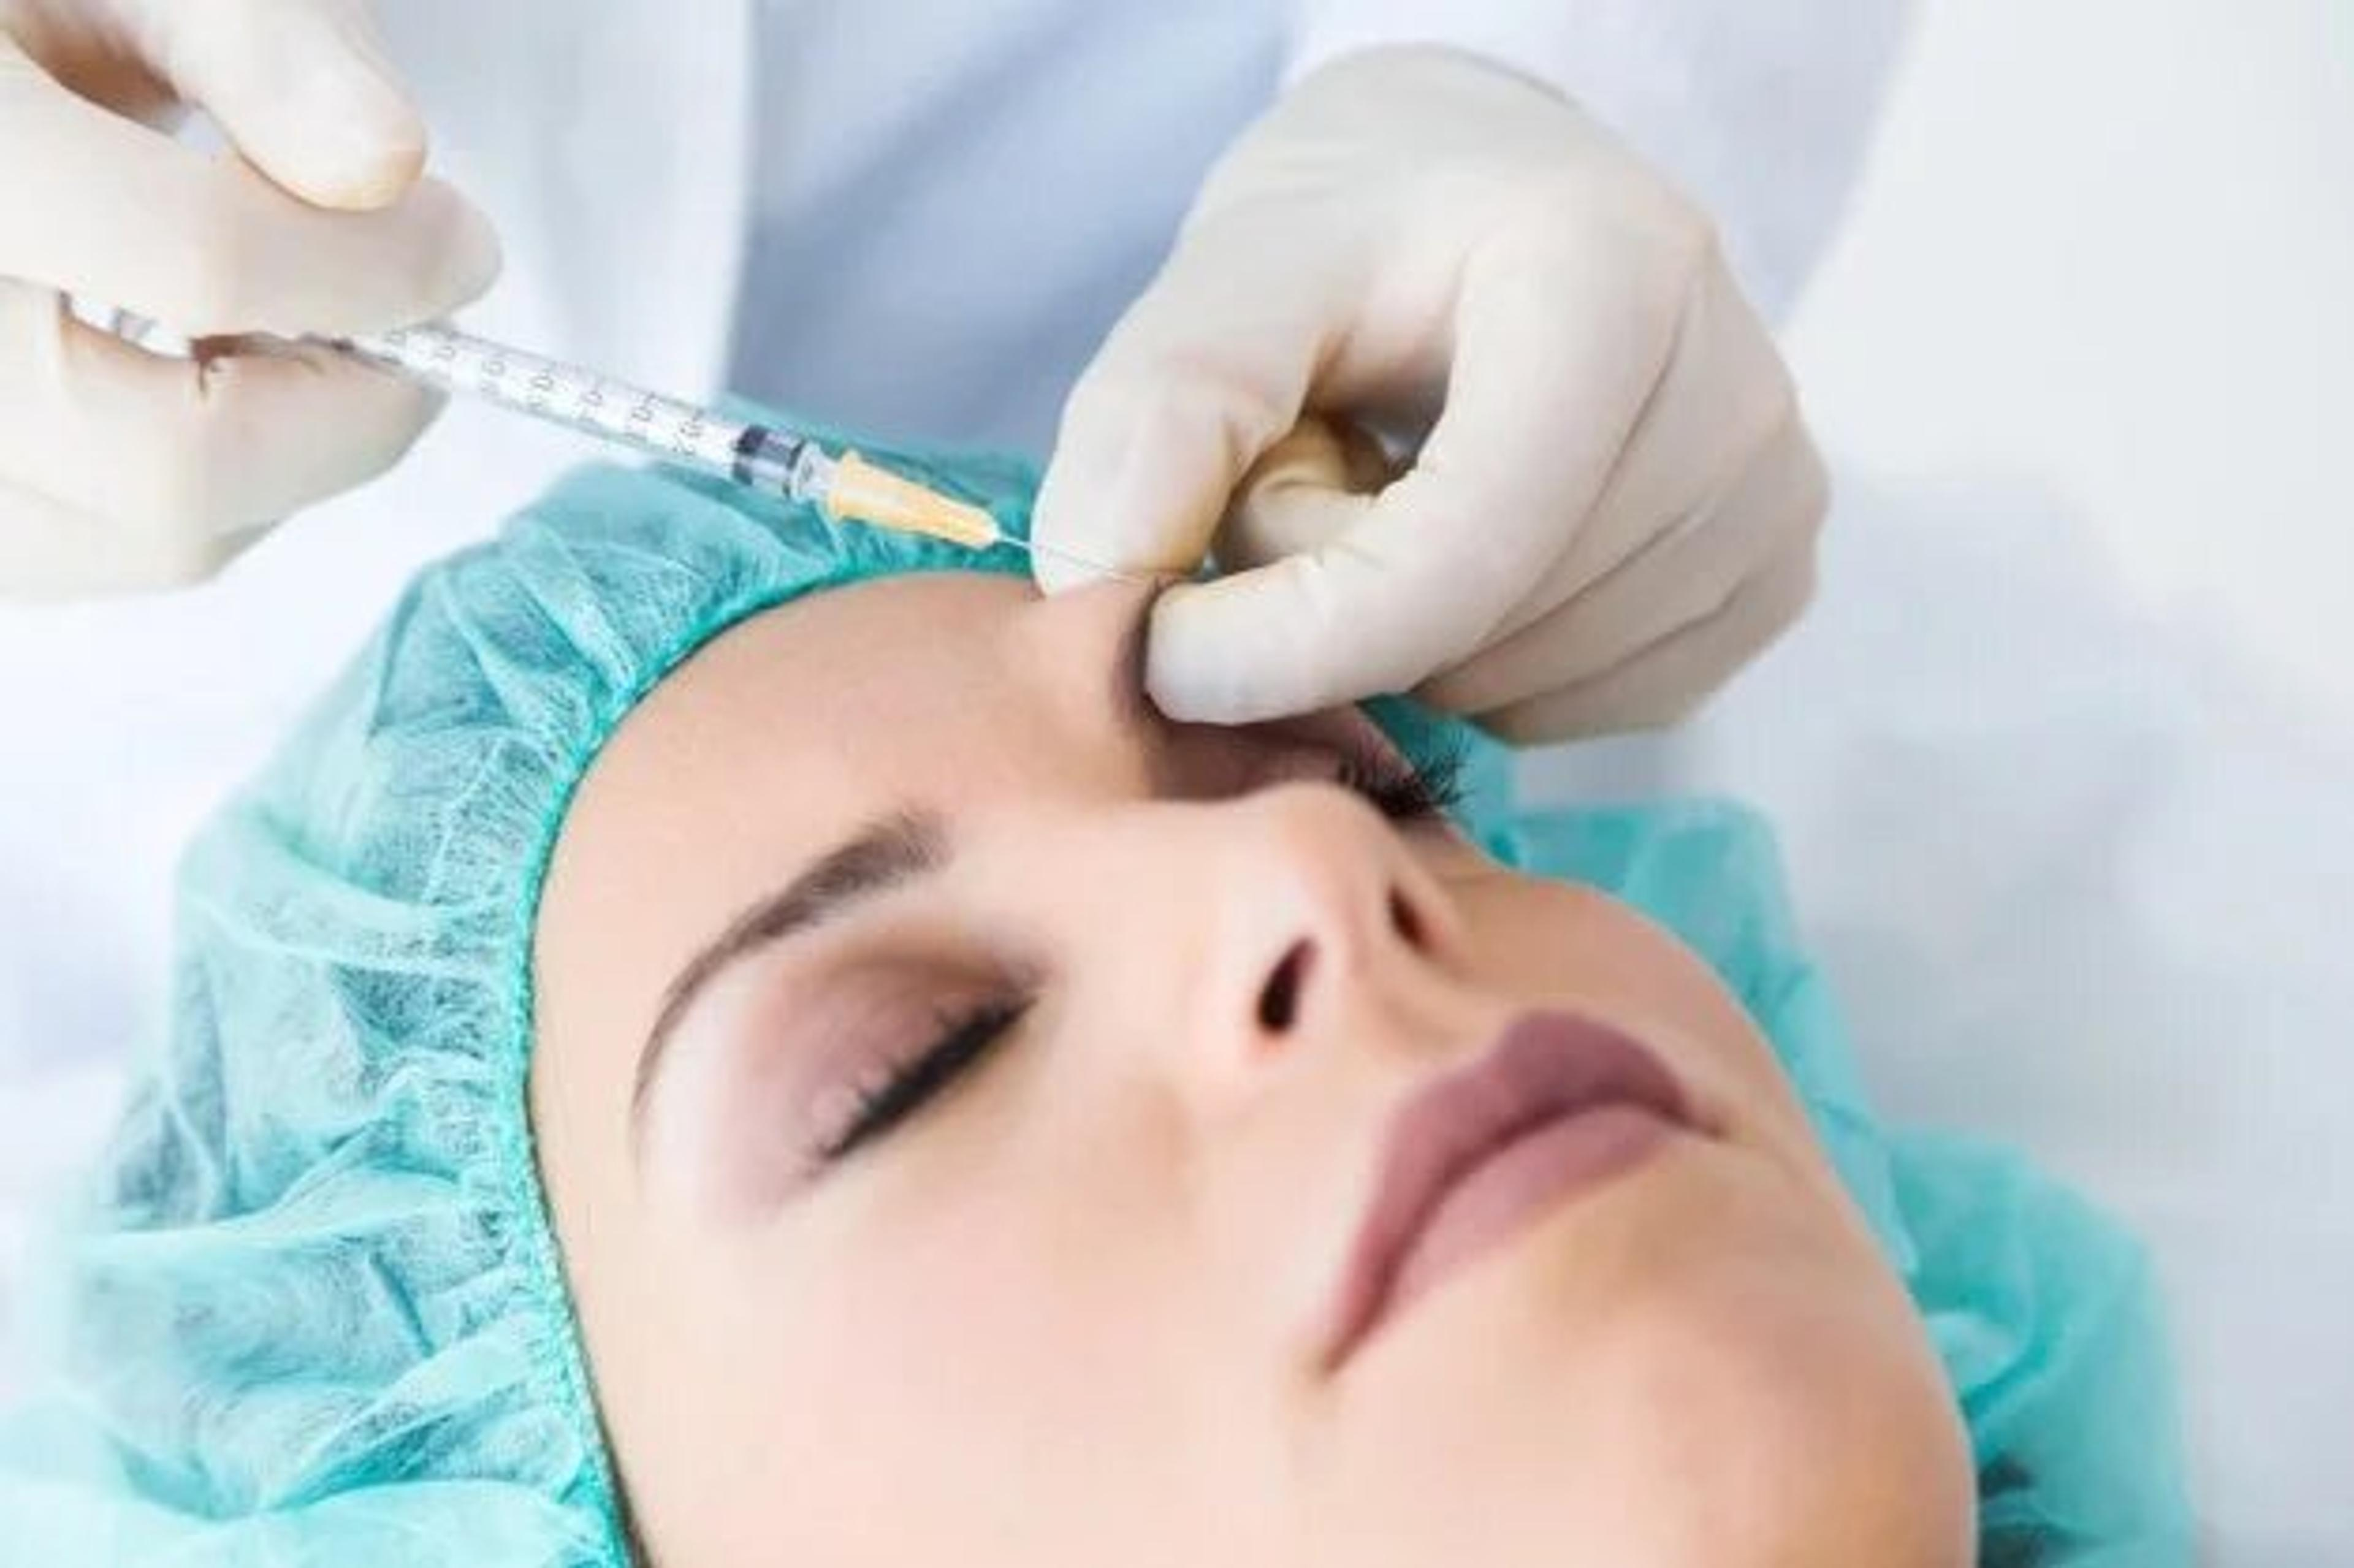 Patient receiving injection near eyes